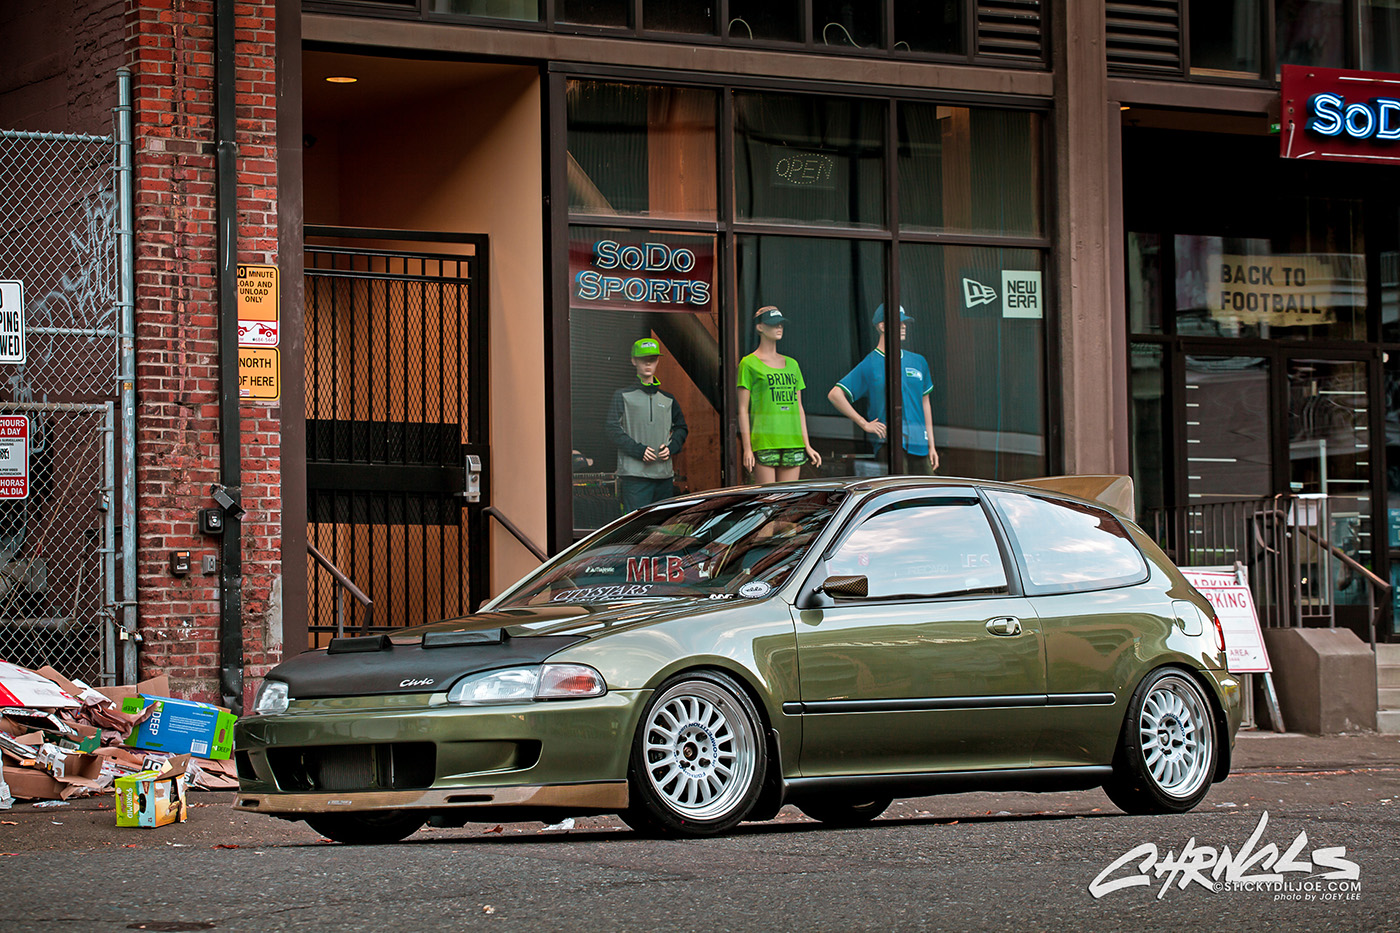 Unfeatured: Tomas Burns' Honda Civic…